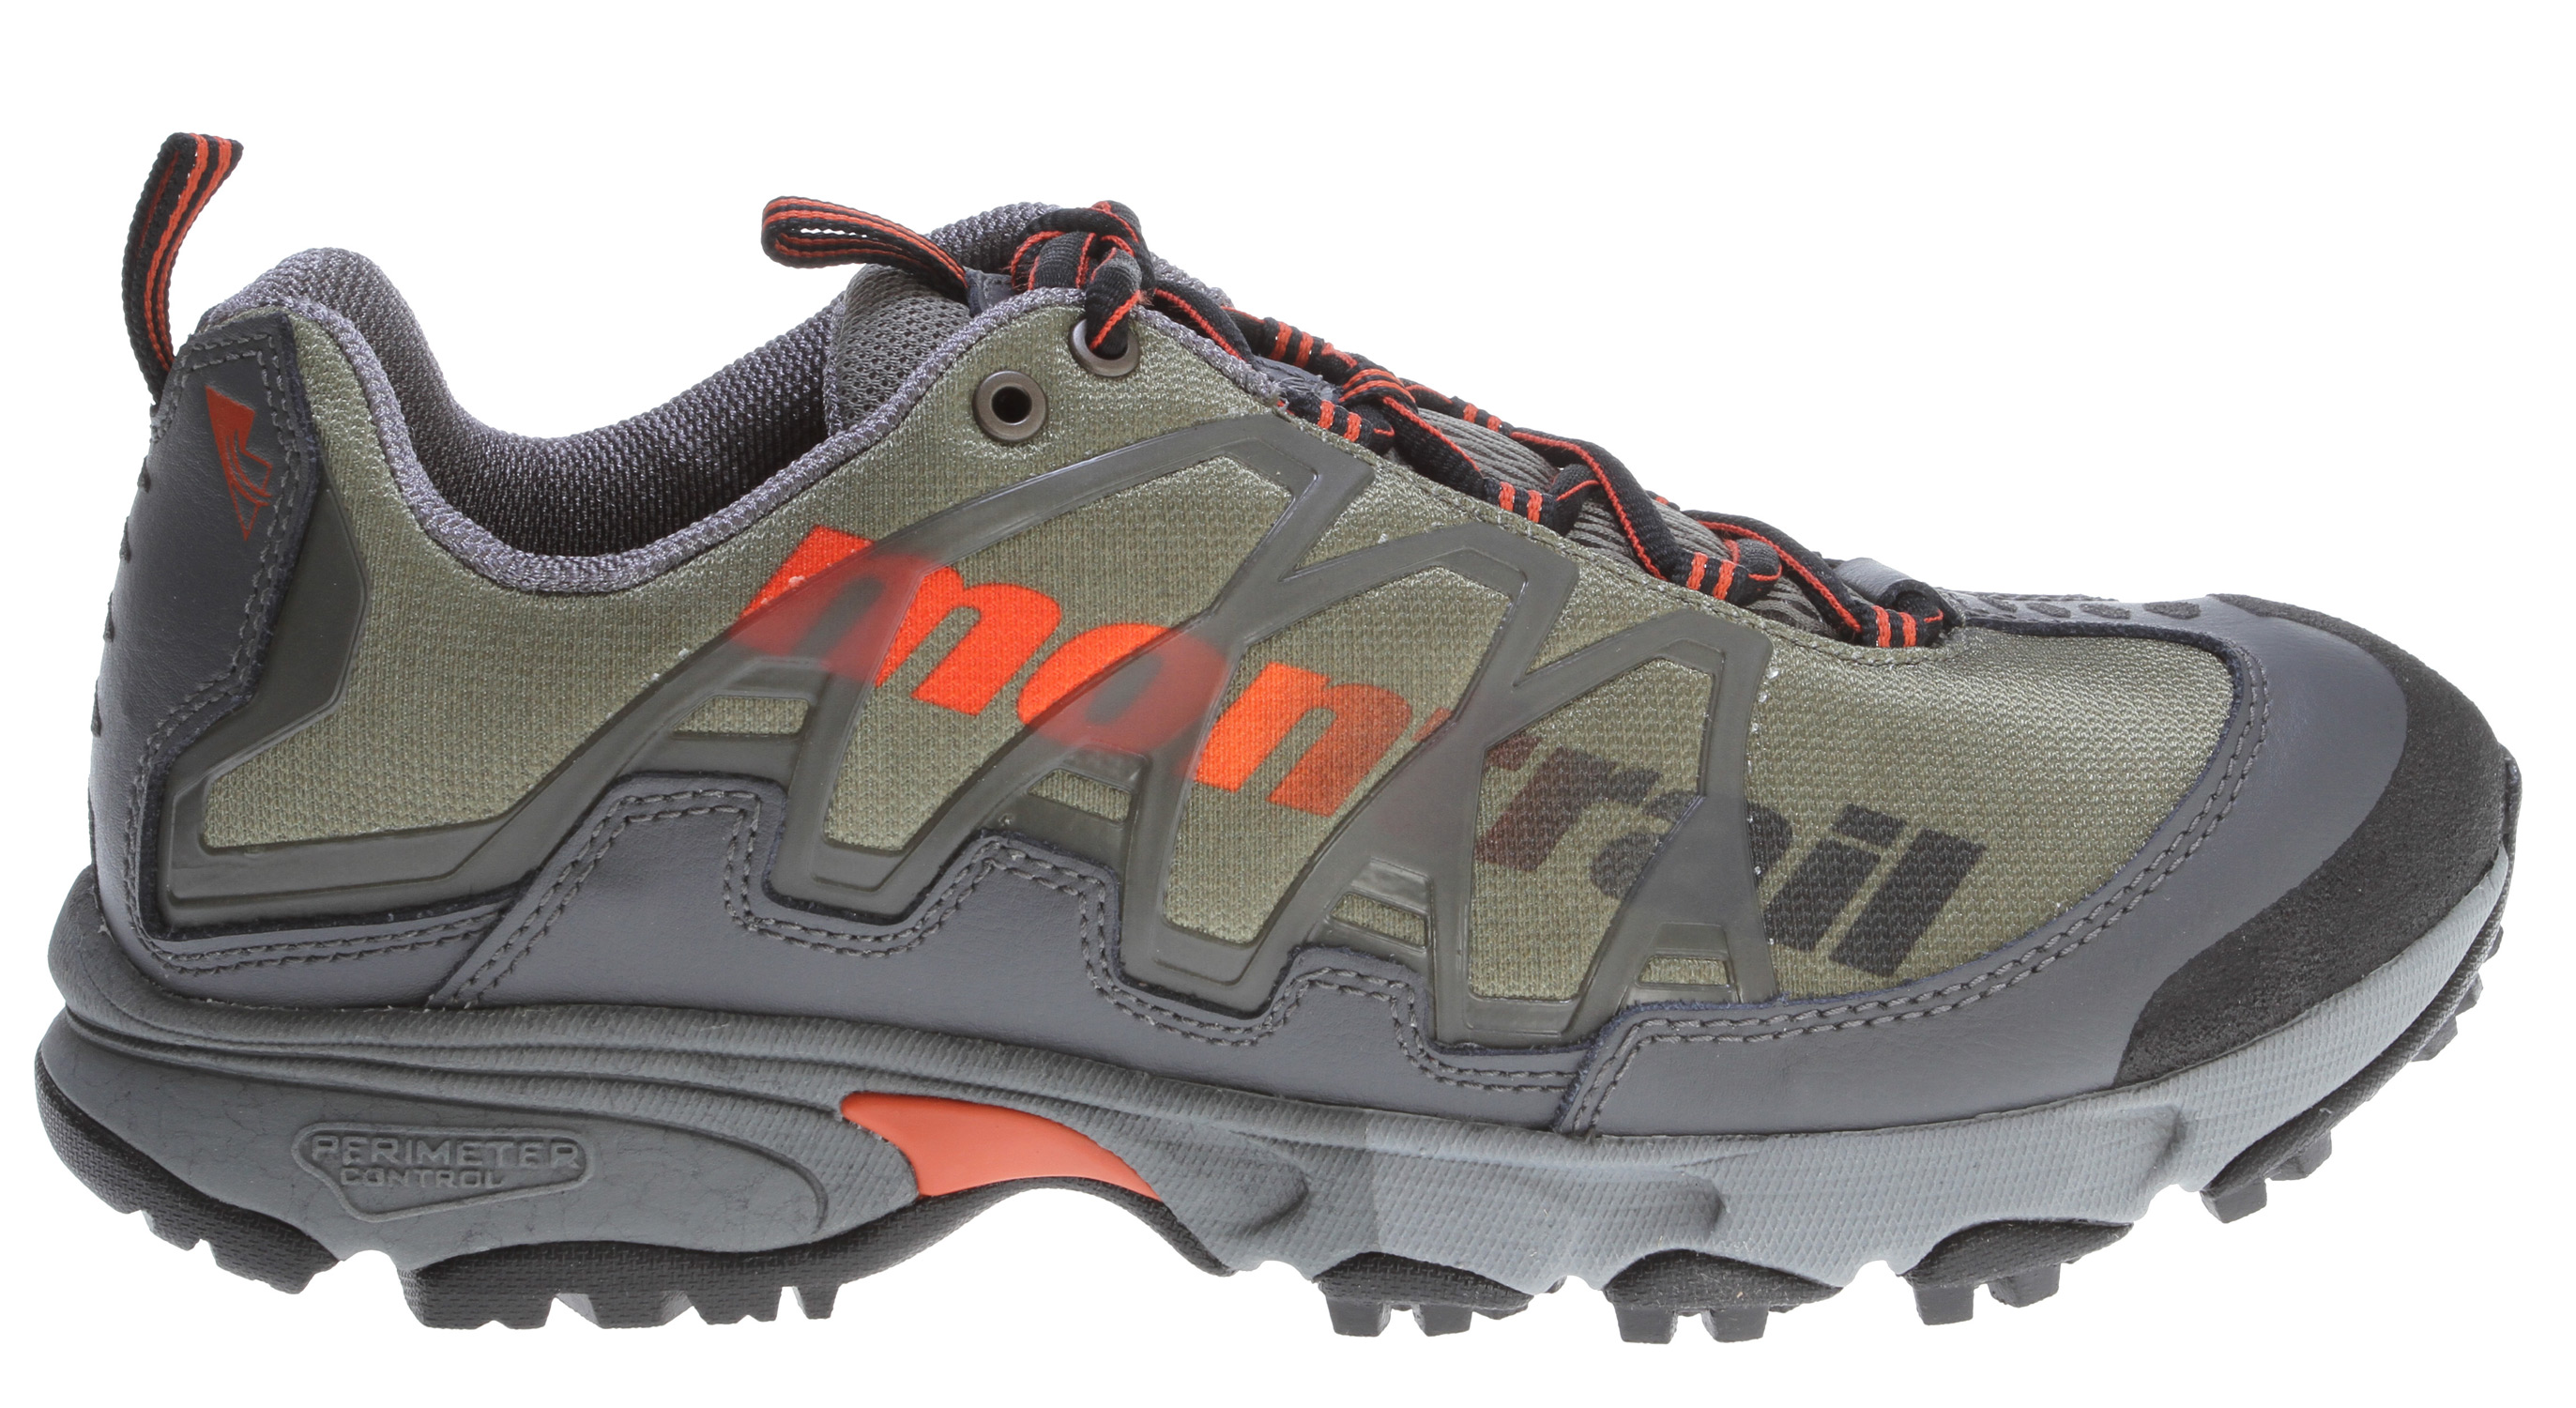 Camp and Hike Lightweight and low-cut, the AT Plus is built for fastpackers and for those who demand a high performance, long distance hiking shoeKey Features of the Montrail At Plus Hiking Shoes: Weight: 14.4 oz / 408 g Durometer: Medial Post 68 Asker C / 58 Asker C (+/-3 degrees) Fit Notes: Wider forefoot - $79.95